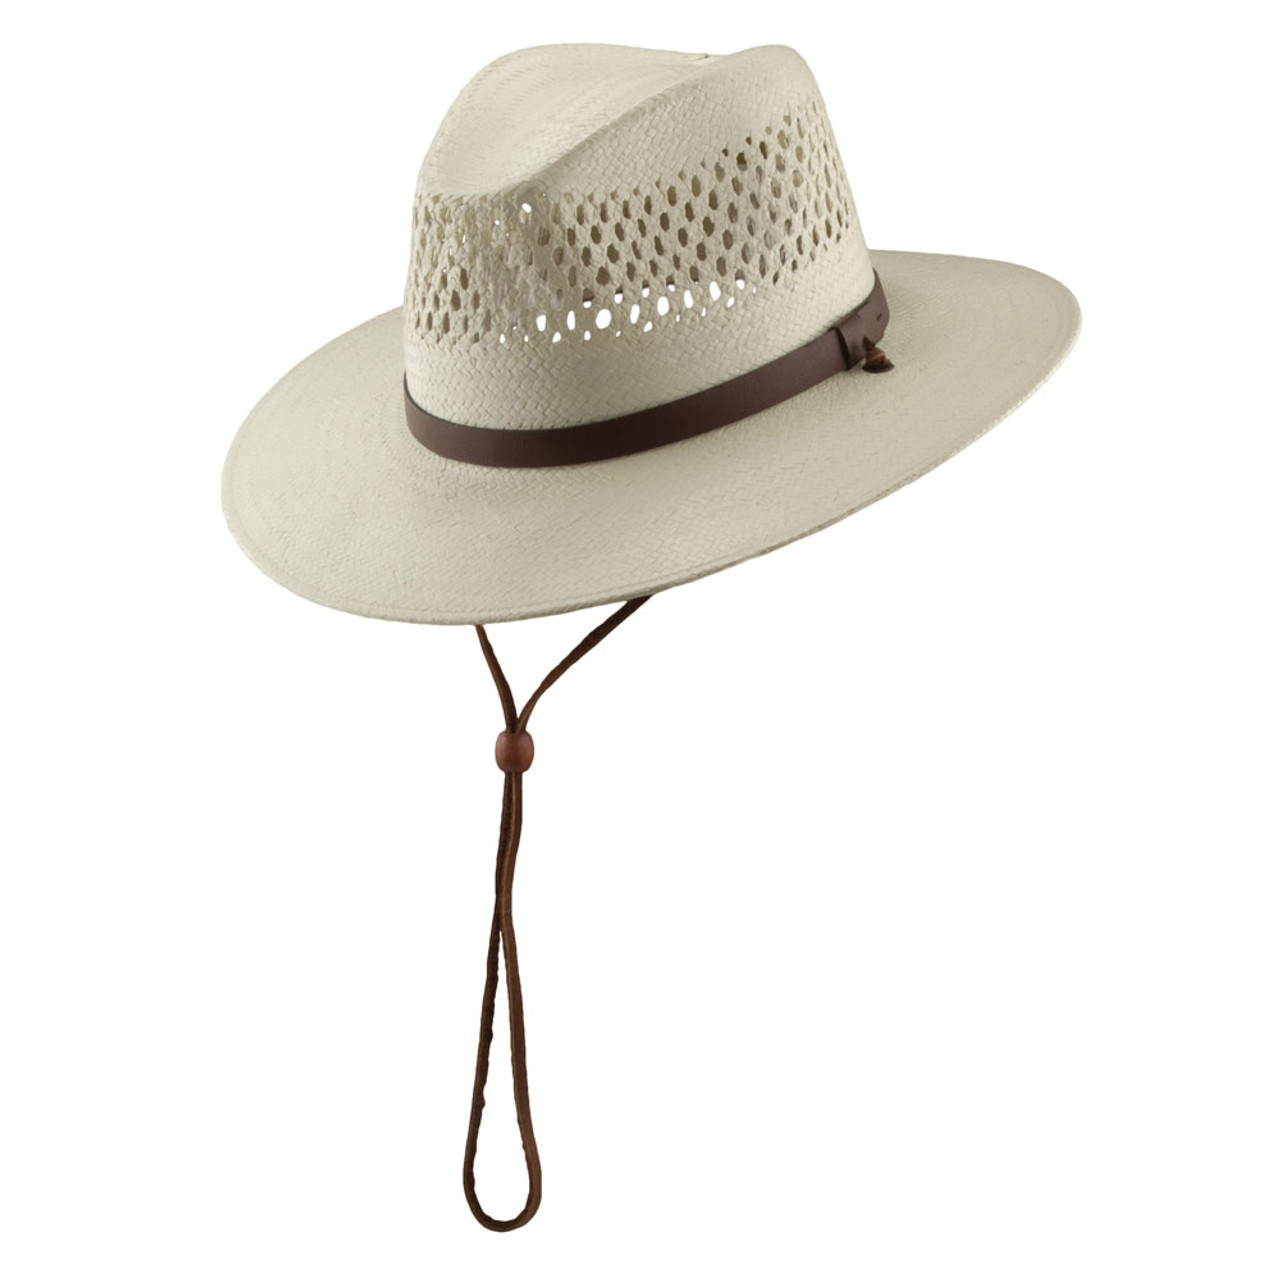 c9c15561 Scala   Toyo Safari Hat with Vented Crown   Hats Unlimited